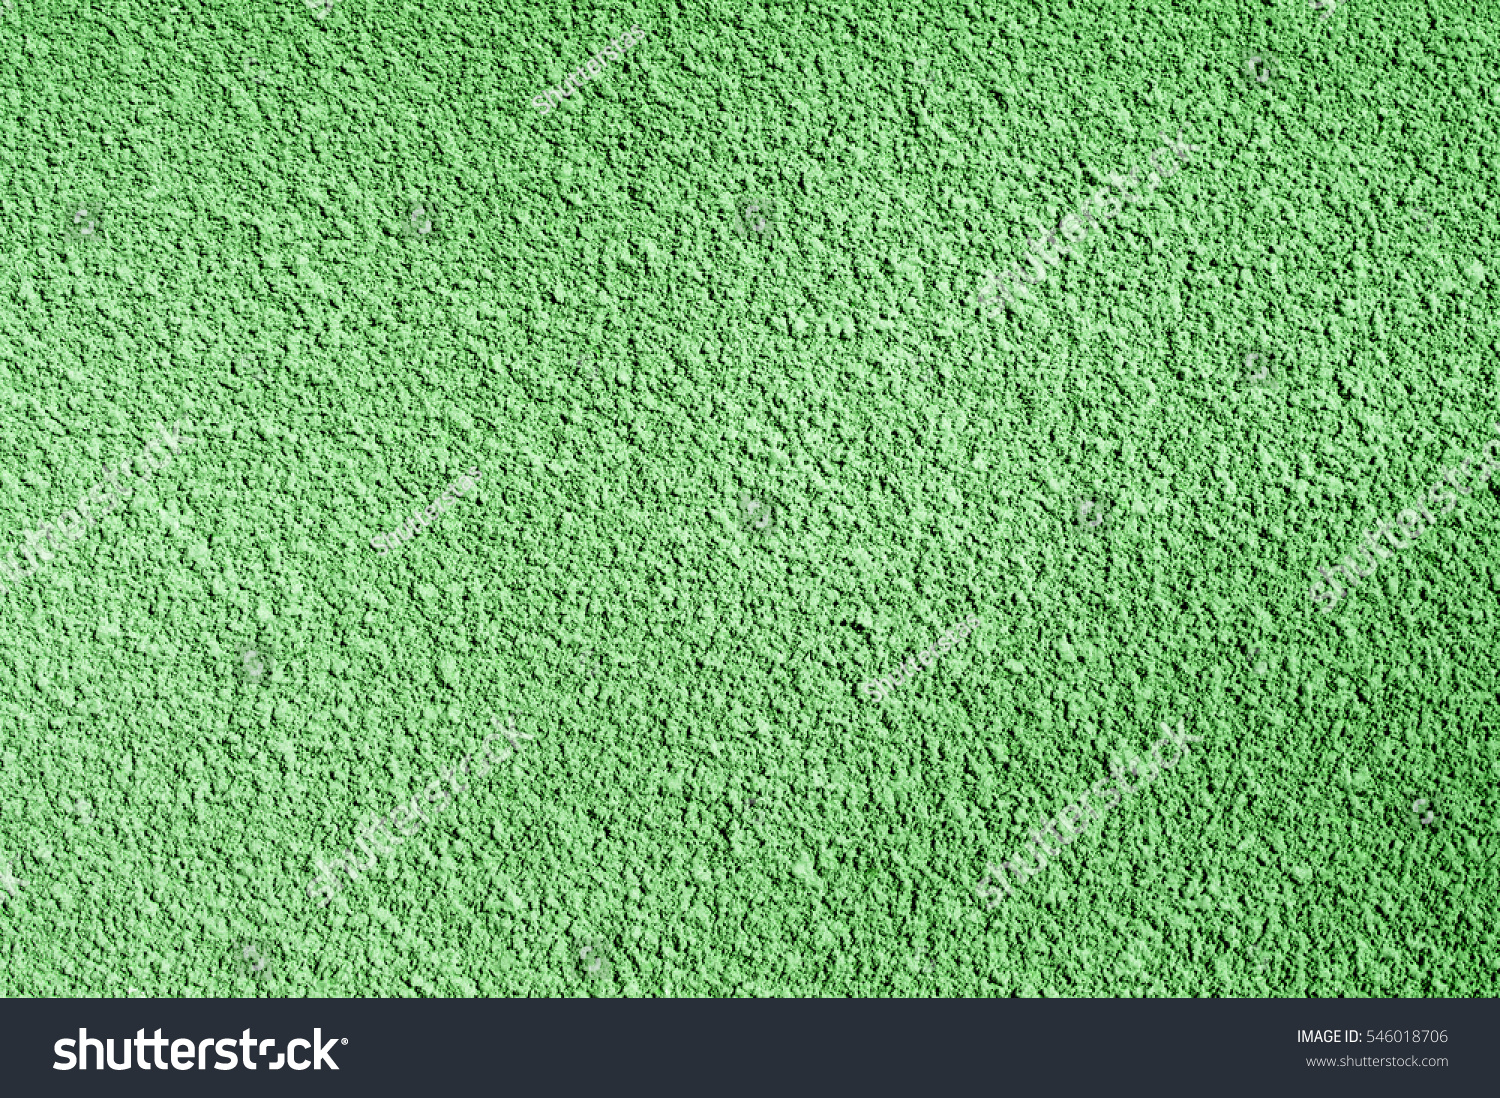 Background Green Stucco Coated Painted Exterior Stock Photo 546018706 Shutterstock